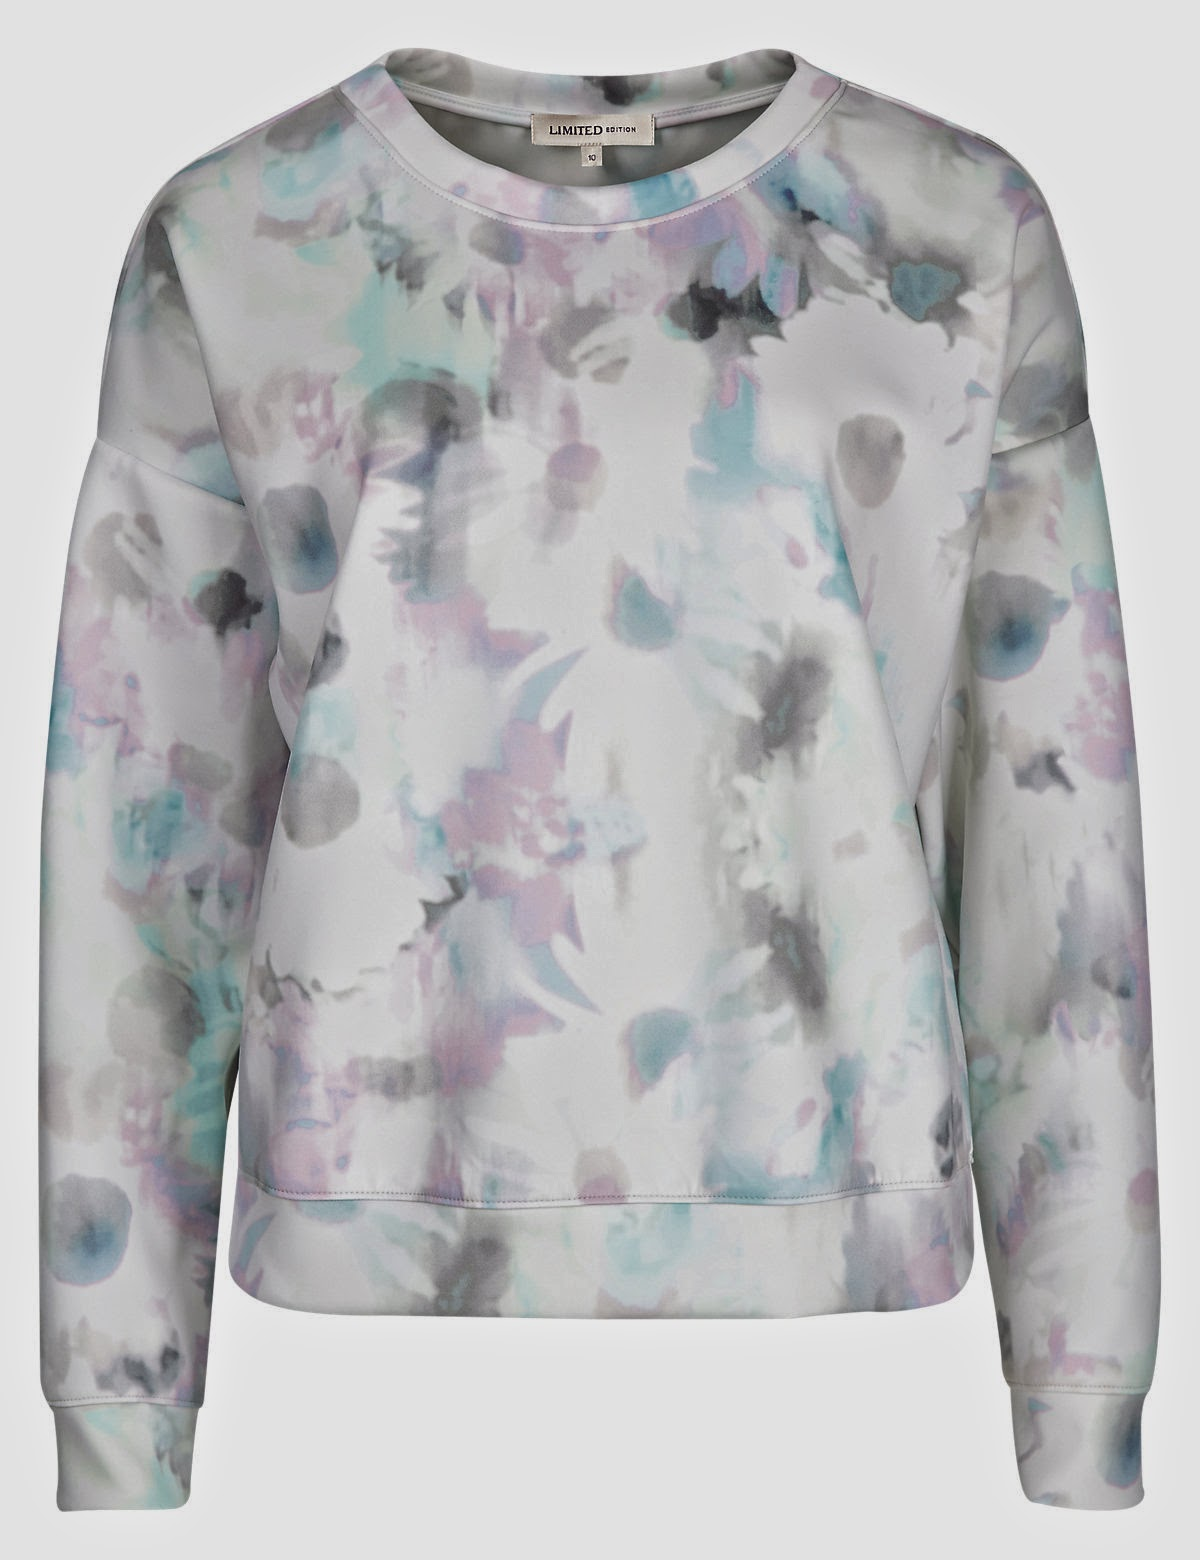 Limited Edition blurred floral sweat top pictures and price